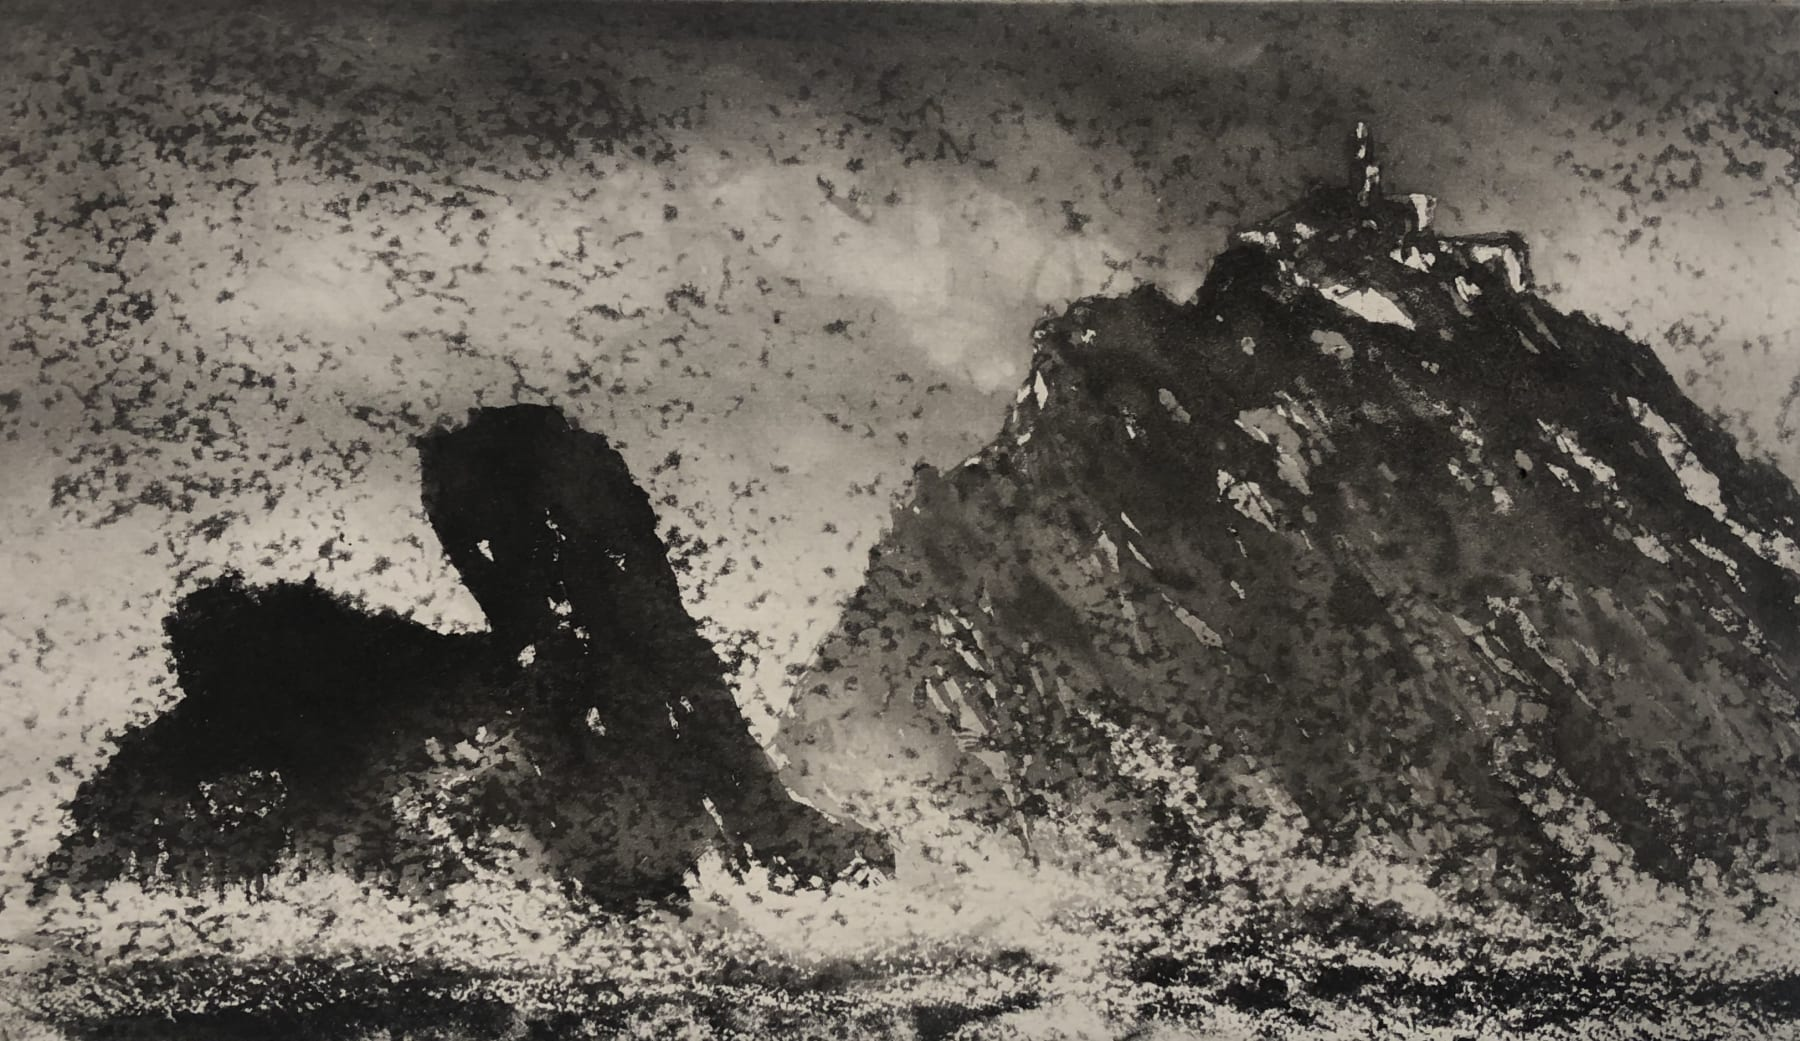 Norman Ackroyd, Parrot Rock Co. Mayo, 2020